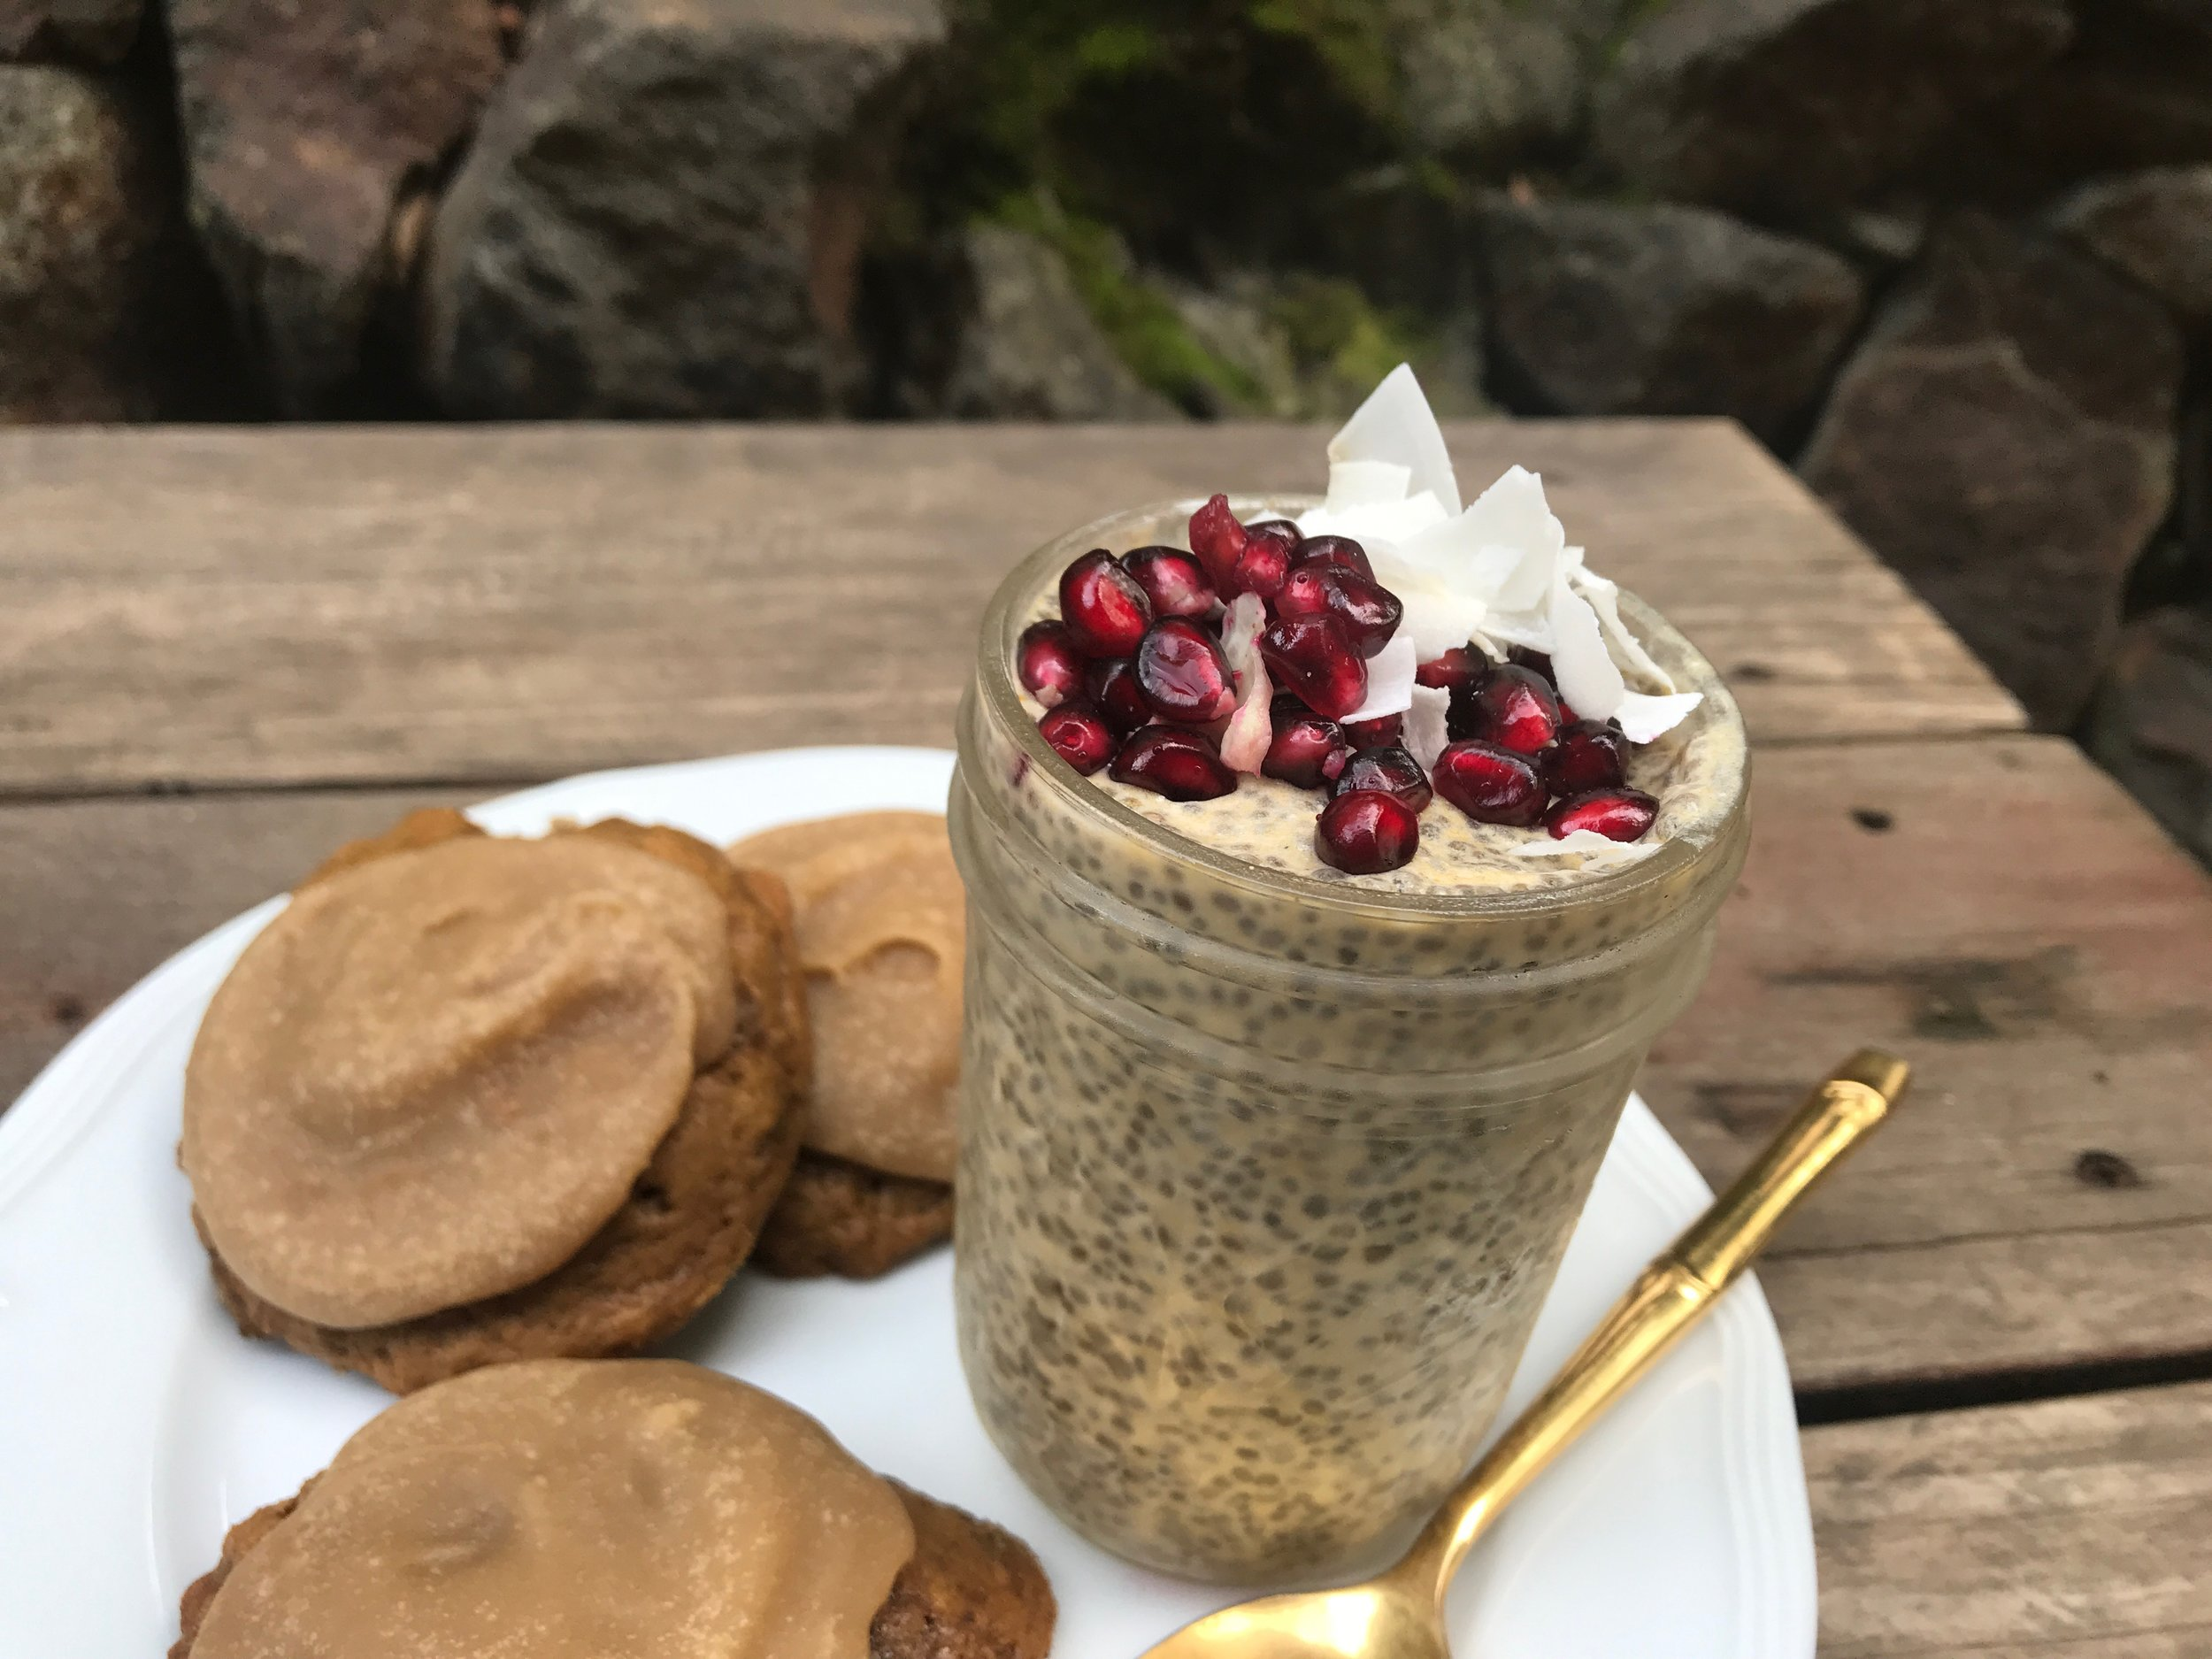 Pumpkin Spice Chia Seed Pudding and the cookies that inspired it.